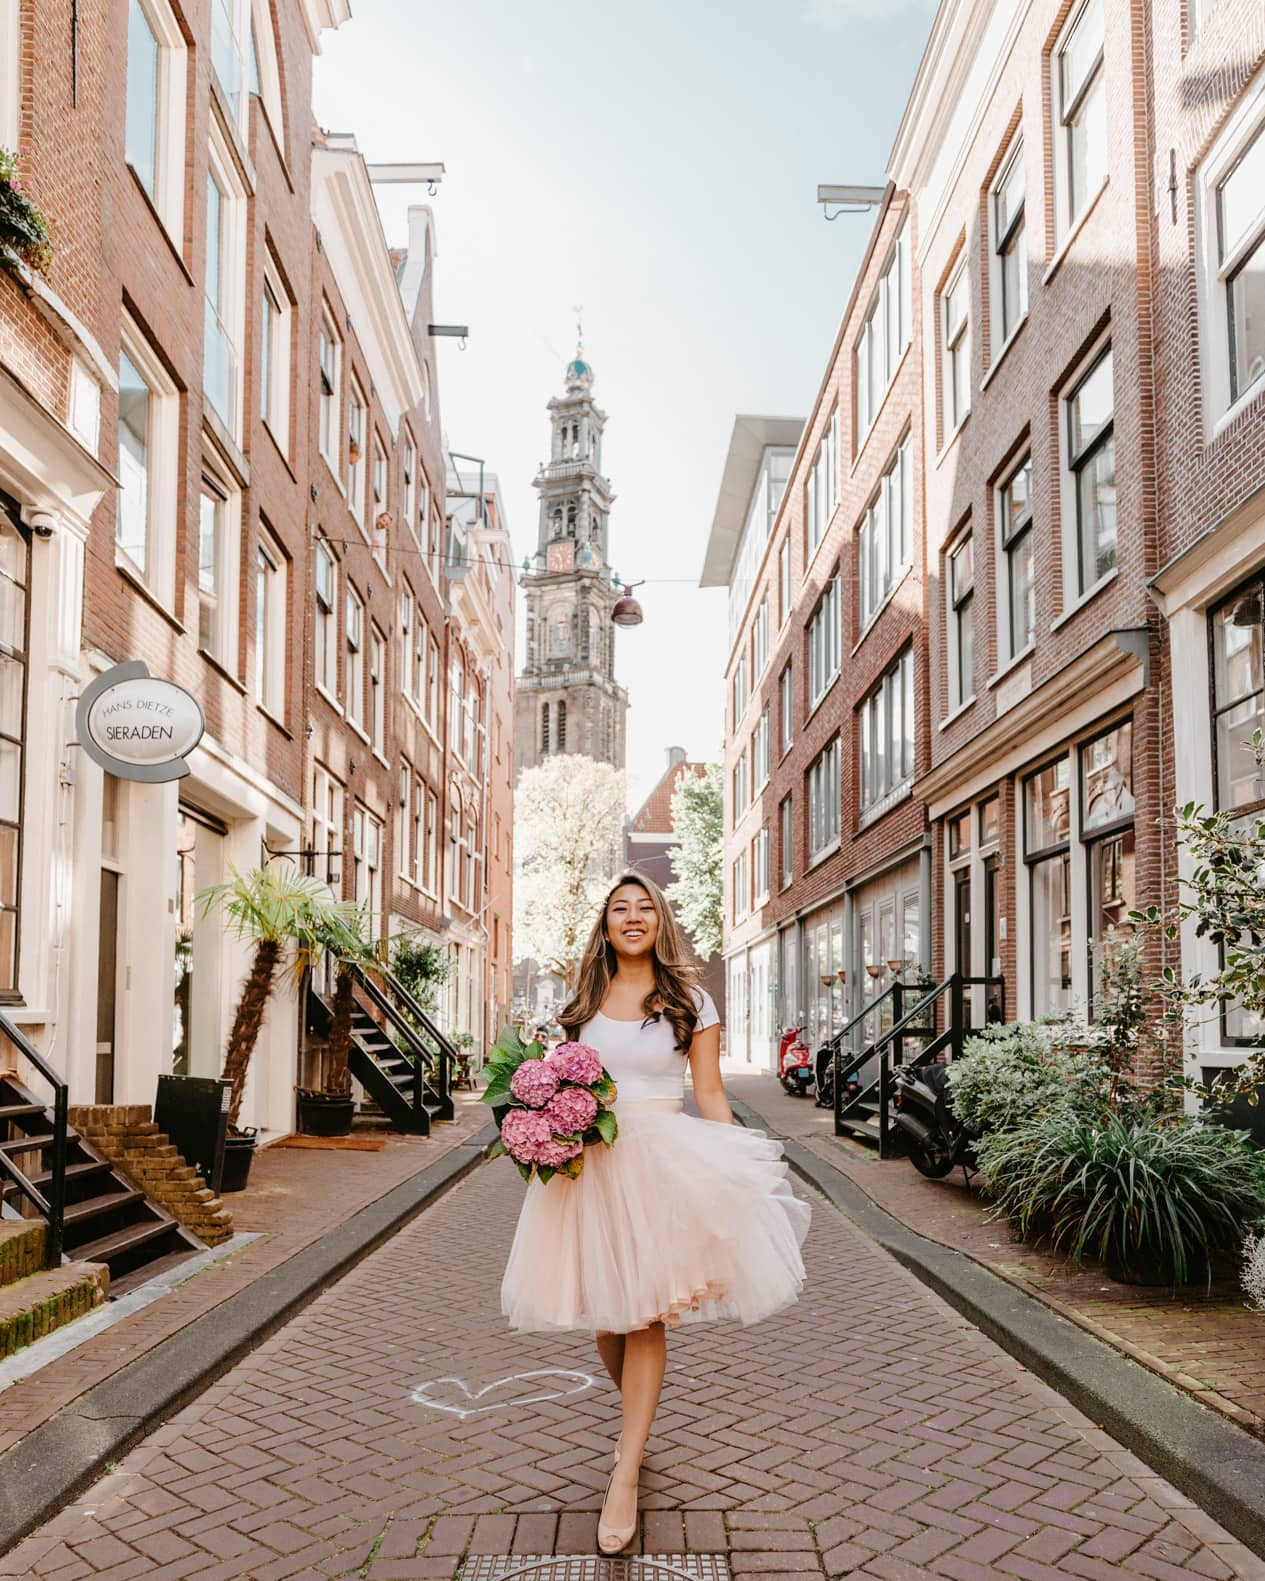 This street in Westerkerk with the church in the background is one of beautiful places in Amsterdam.